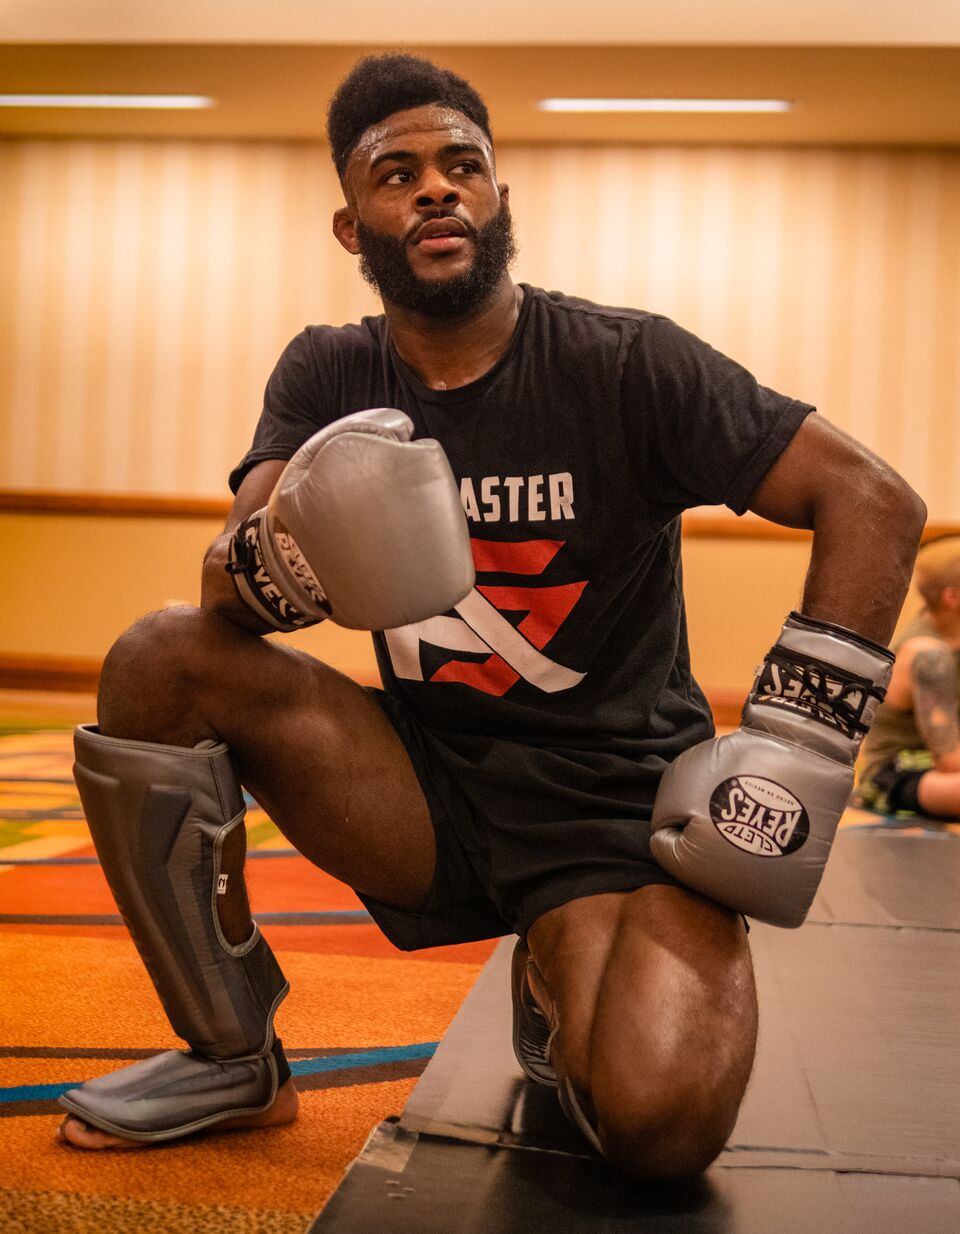 Sterling believes Dillashaw relinquishing the belt opens up more opportunities for the bantamweight division